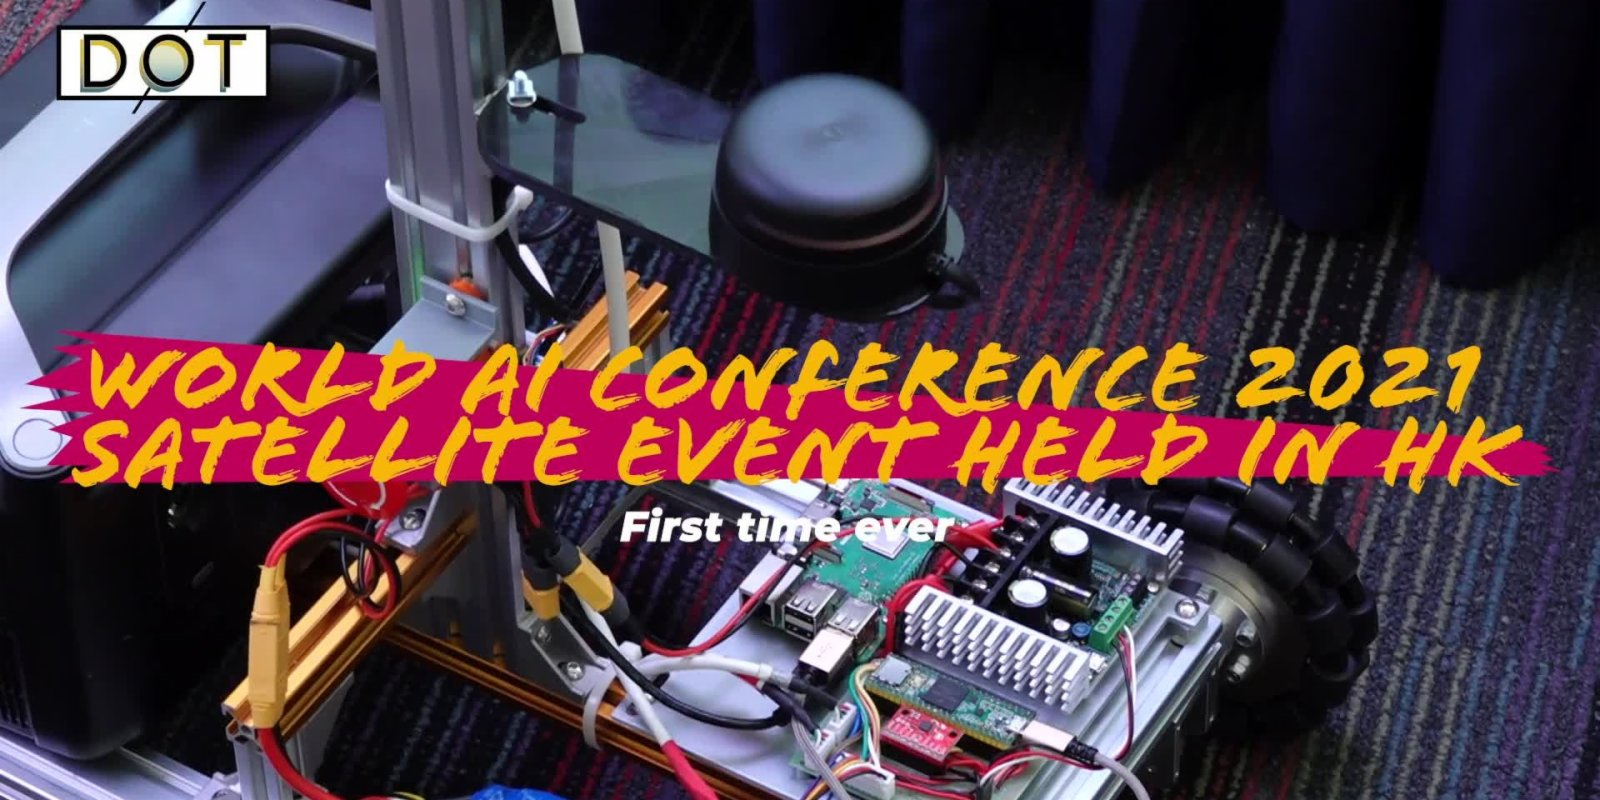 Watch This | First ever: World AI Conference 2021 satellite event held in HK